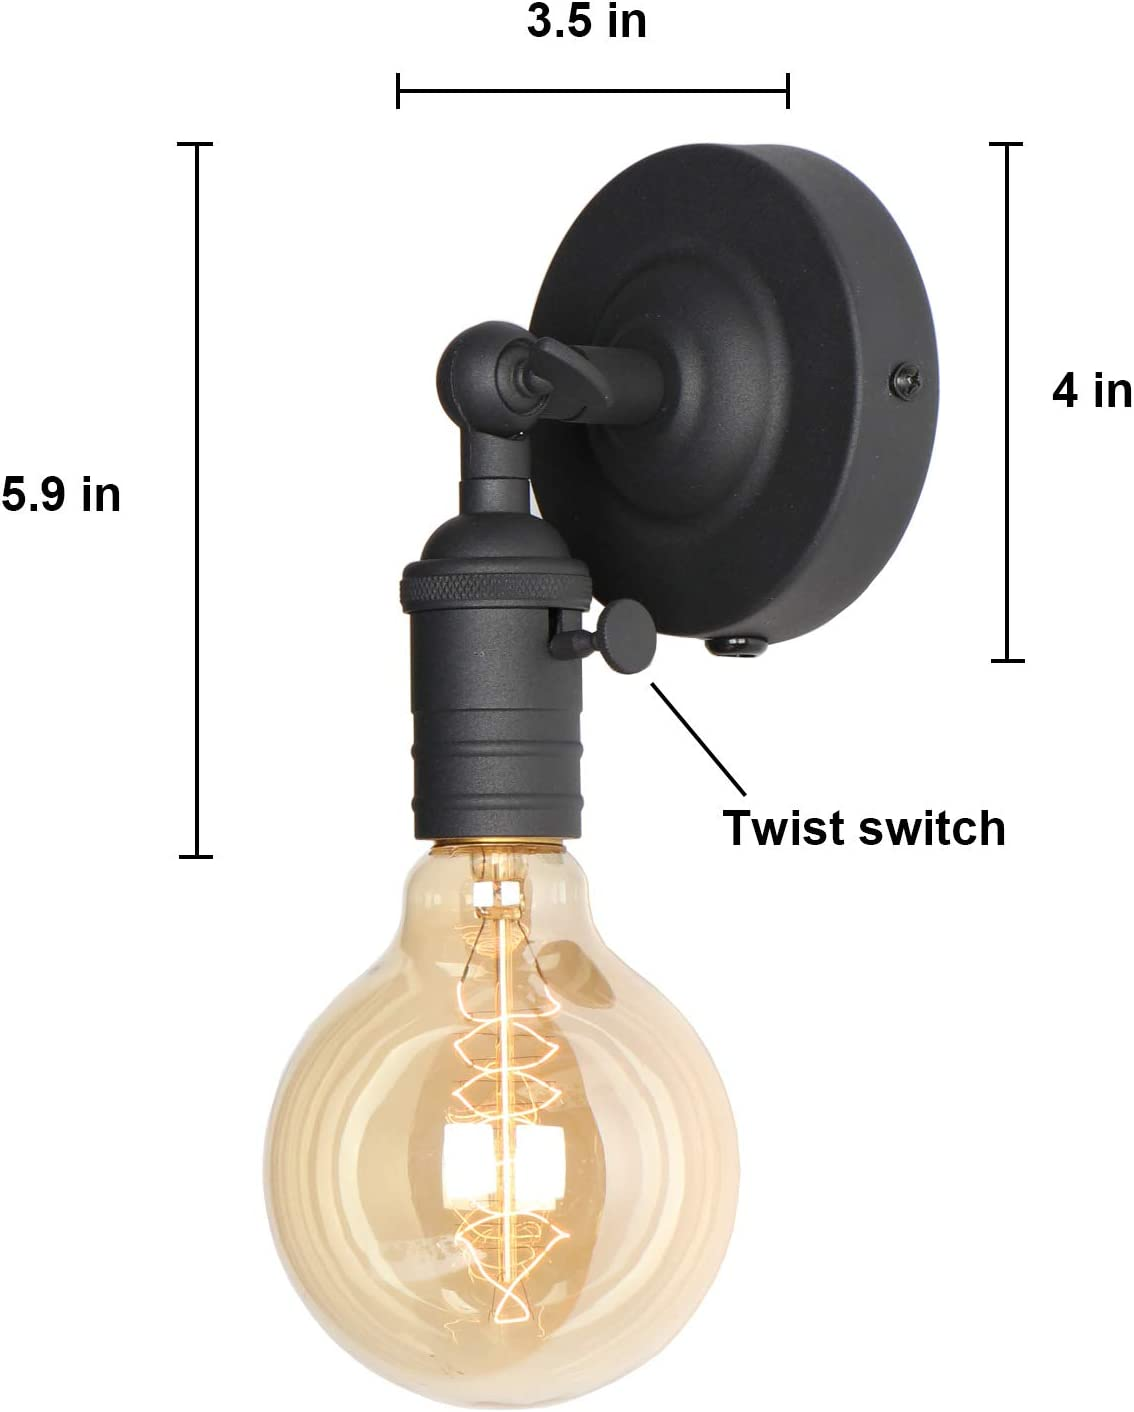 Amazon Com Mini Wall Sconces Lighting Fixture Xiding Upgrade Black Finish Vintage Wall Lamp Single Socket With Candlestick Molding Design Industrial Rustic Retro Metal Wall Lights With On Off Switch 1 Light Home Improvement